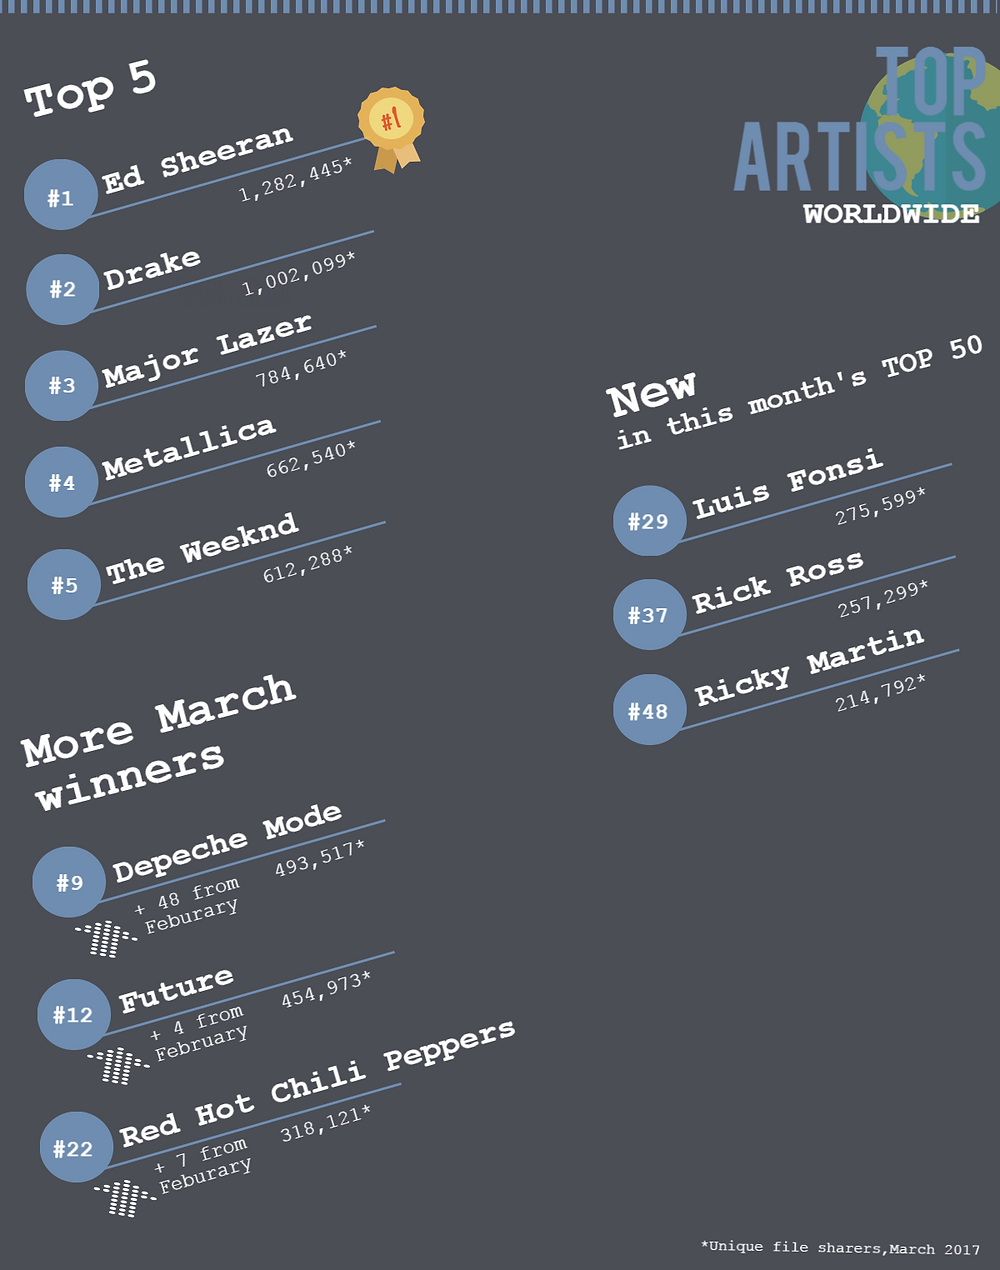 TECXIPIO infographic about the Top5 music artists in file sharing like Ed Sheeran, Drake and Major Lazer as well as new and upcoming artists like Luis Fonsi